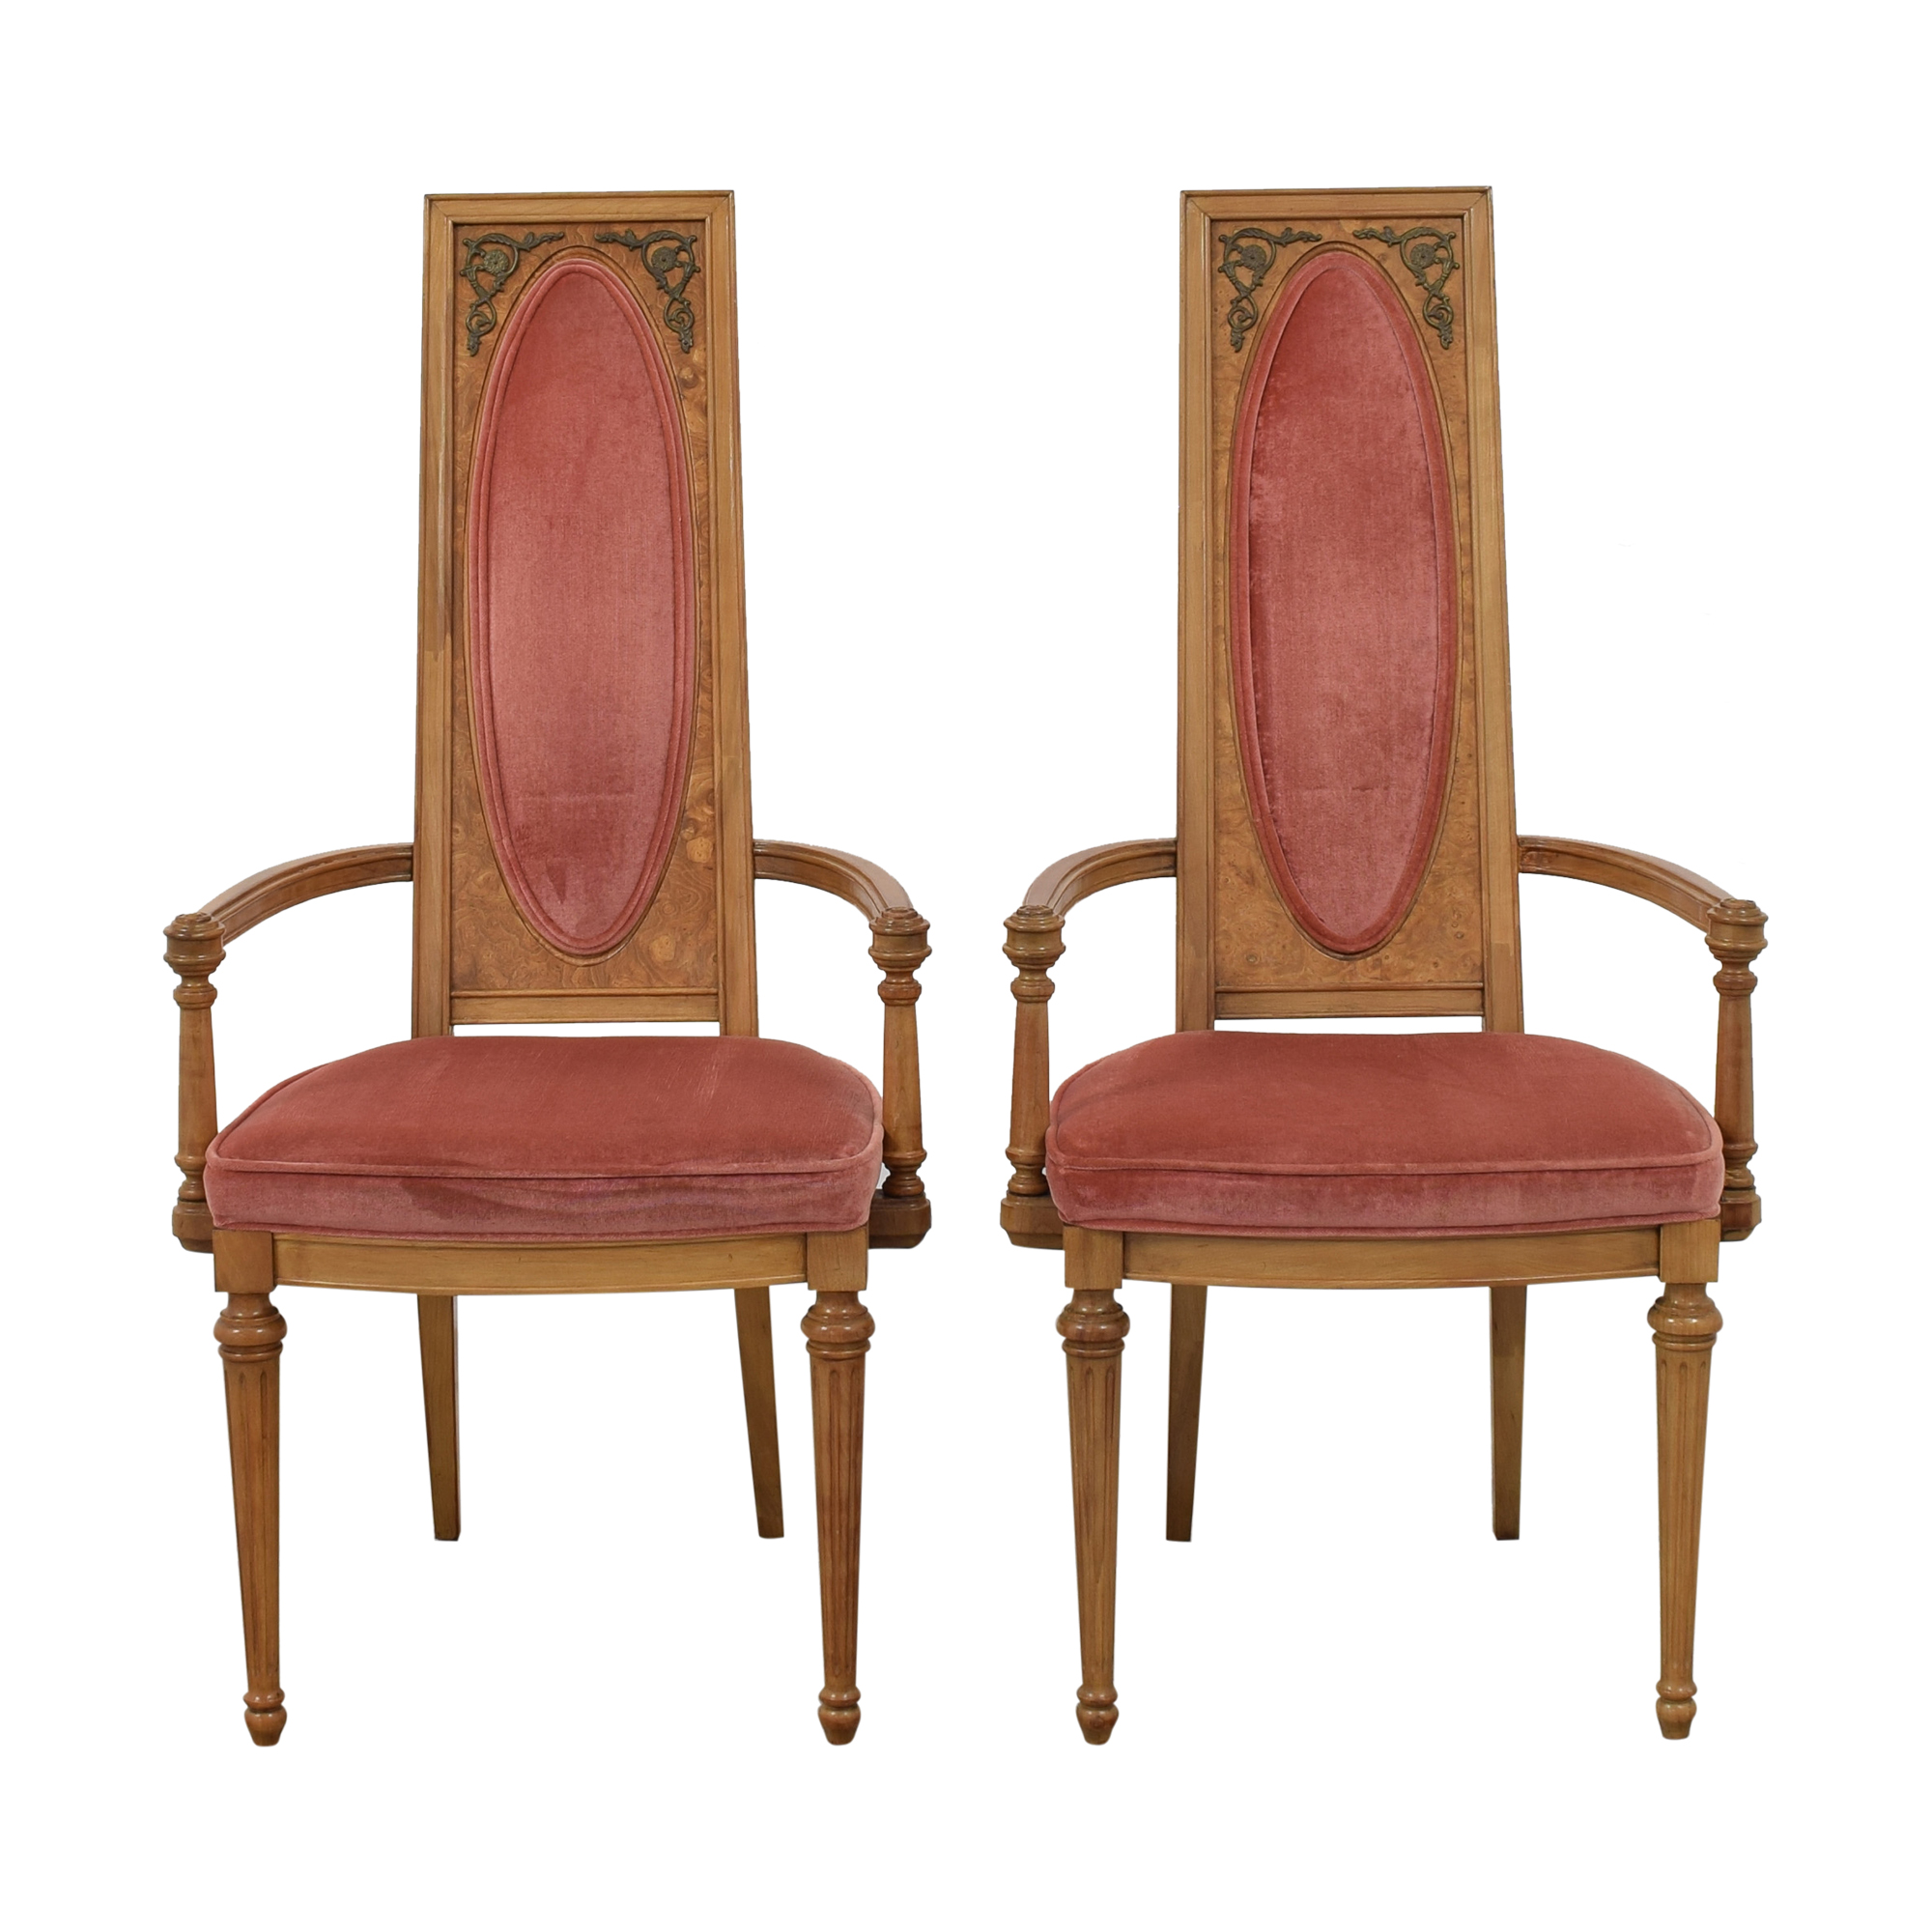 Custom High Back Dining Arm Chairs / Dining Chairs